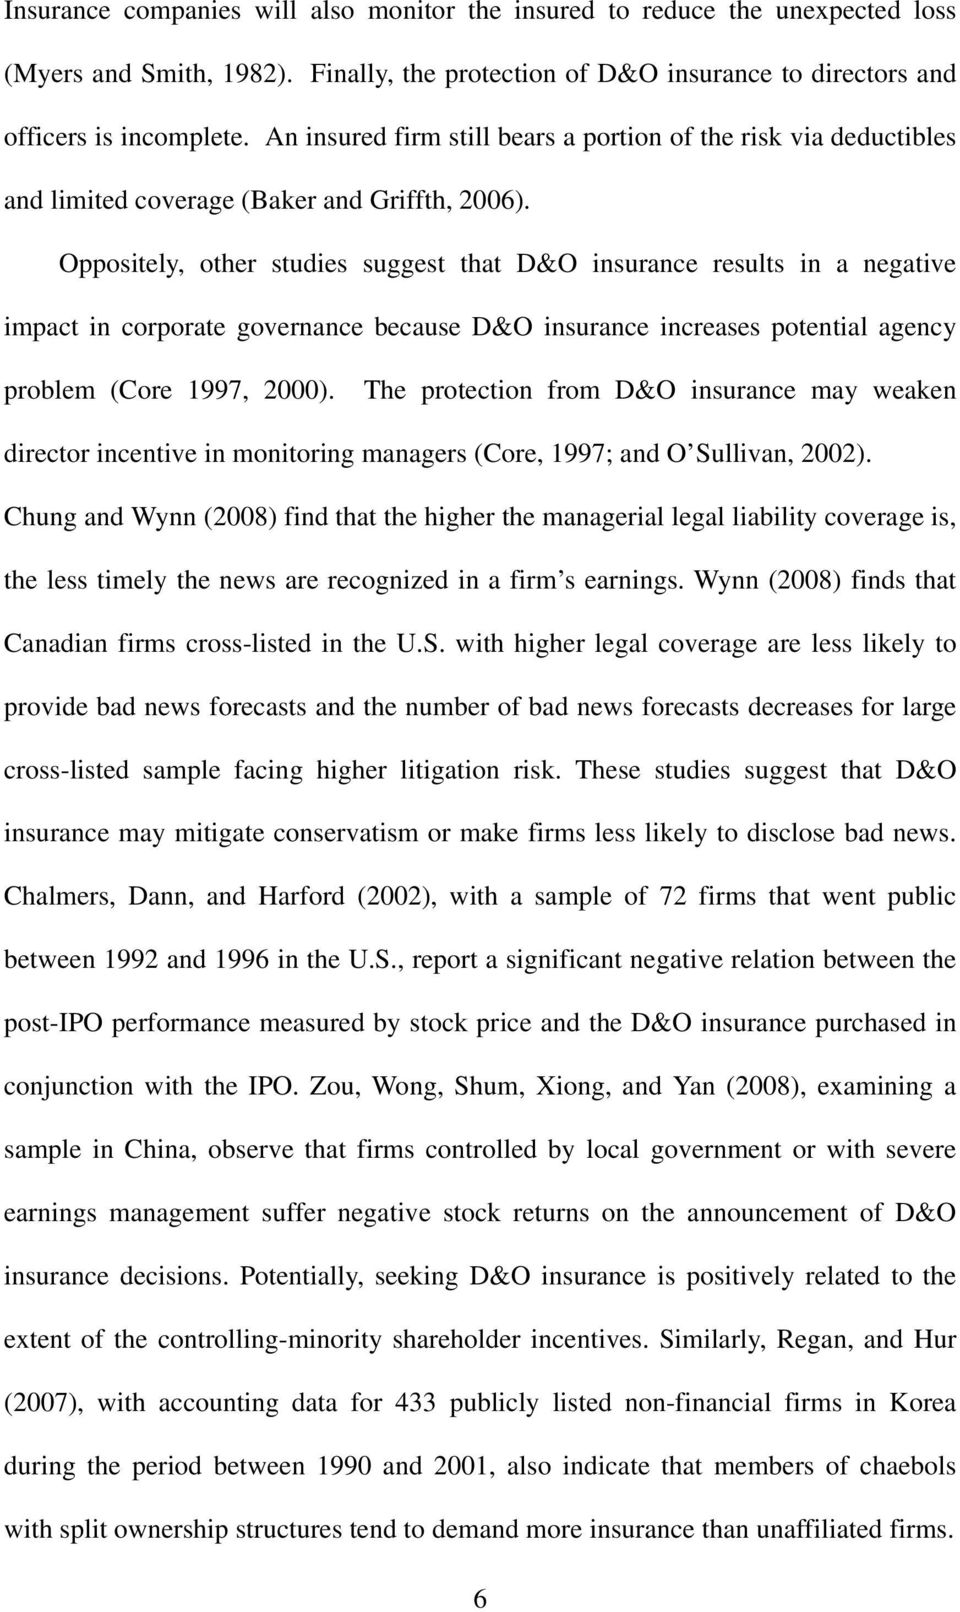 Oppositely, other studies suggest that D&O insurance results in a negative impact in corporate governance because D&O insurance increases potential agency problem (Core 1997, 2000).